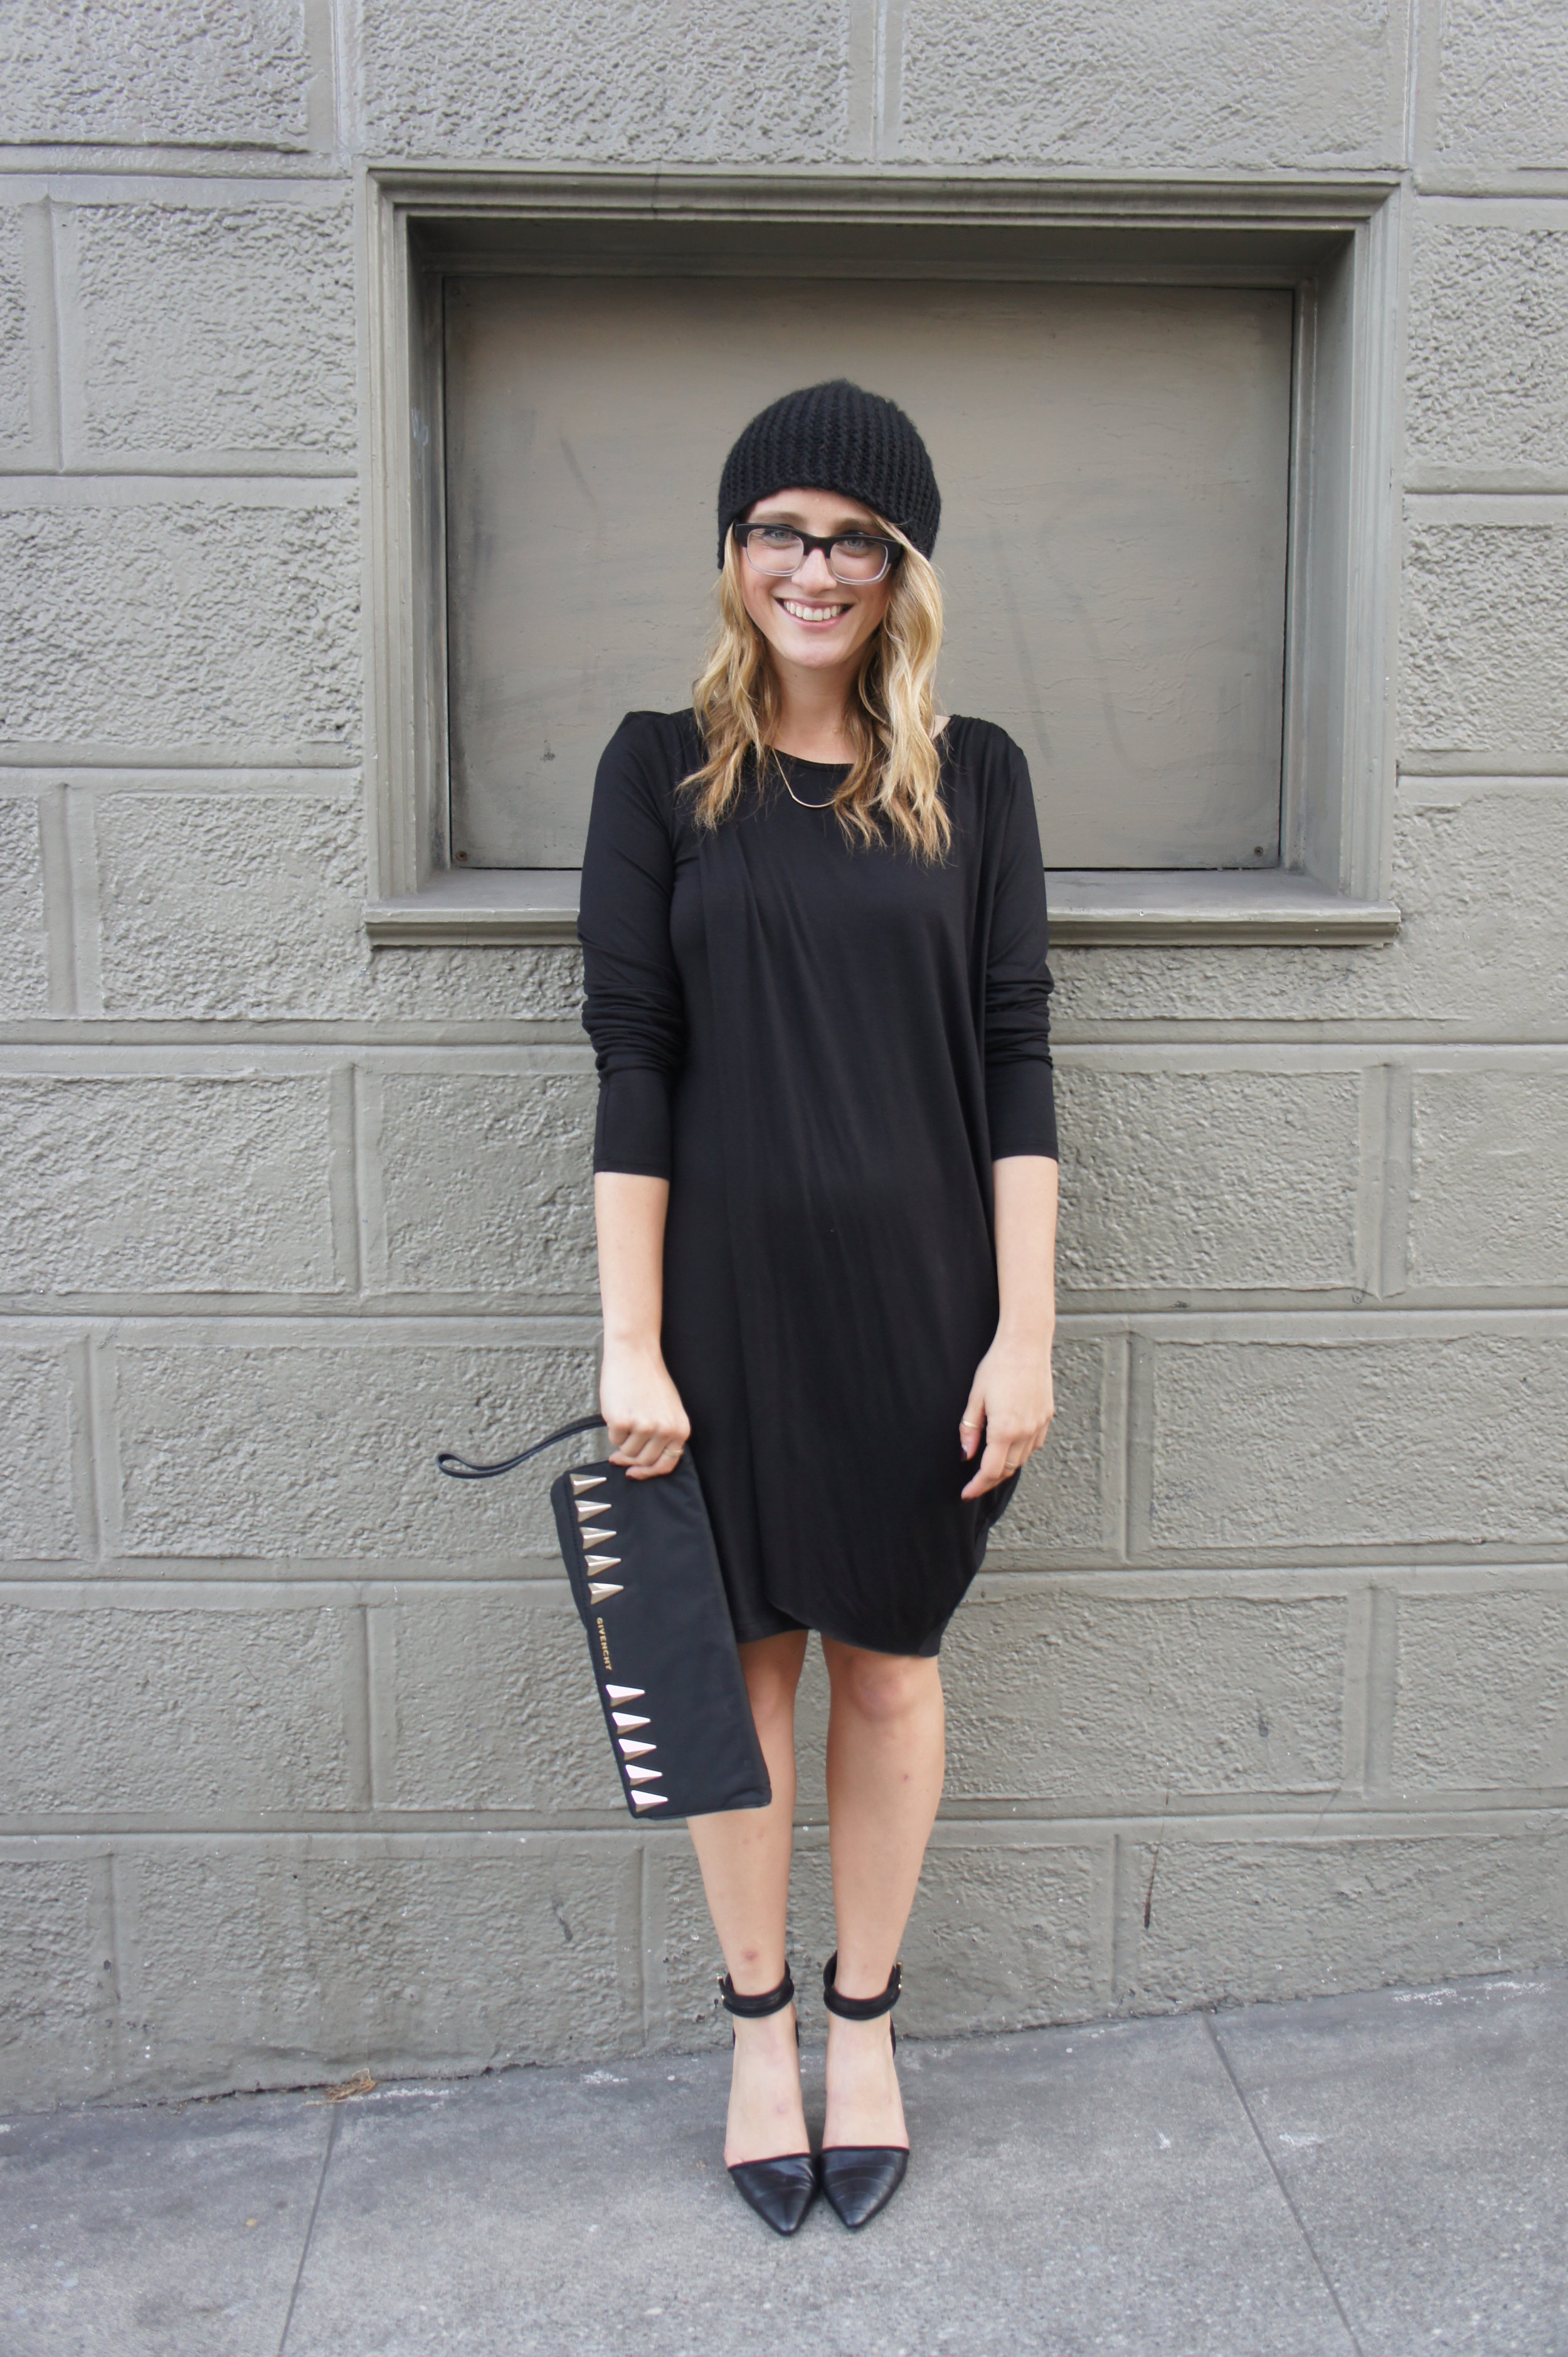 Dress: Bar III | Heels: Charles David | Clutch: Givenchy | Beanie: H&M